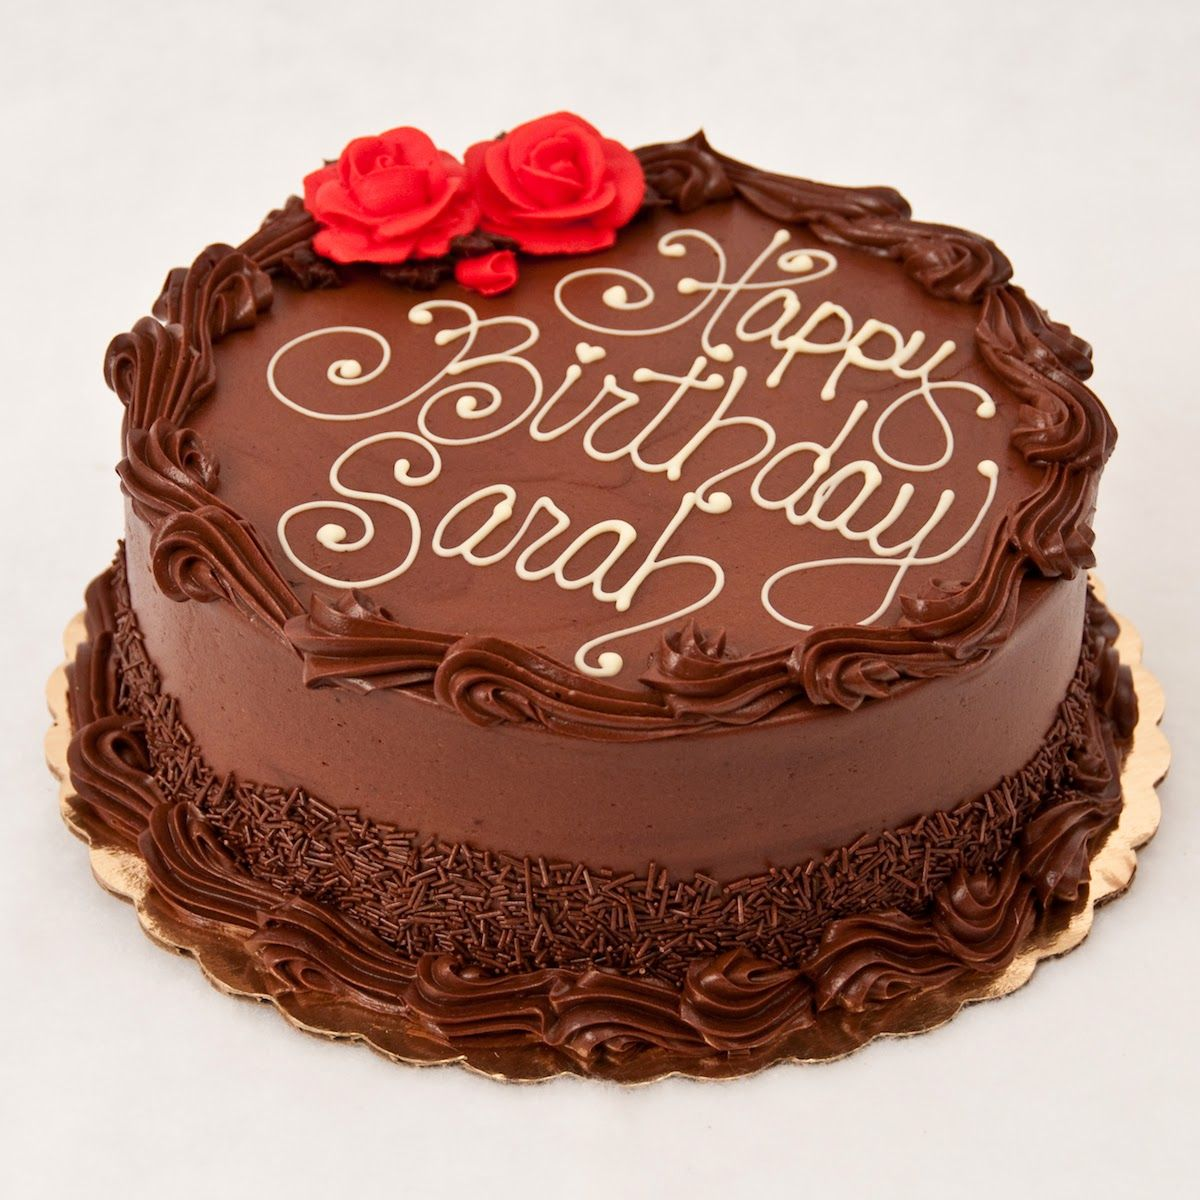 Without cake birthday is not complete. Here we are sharing